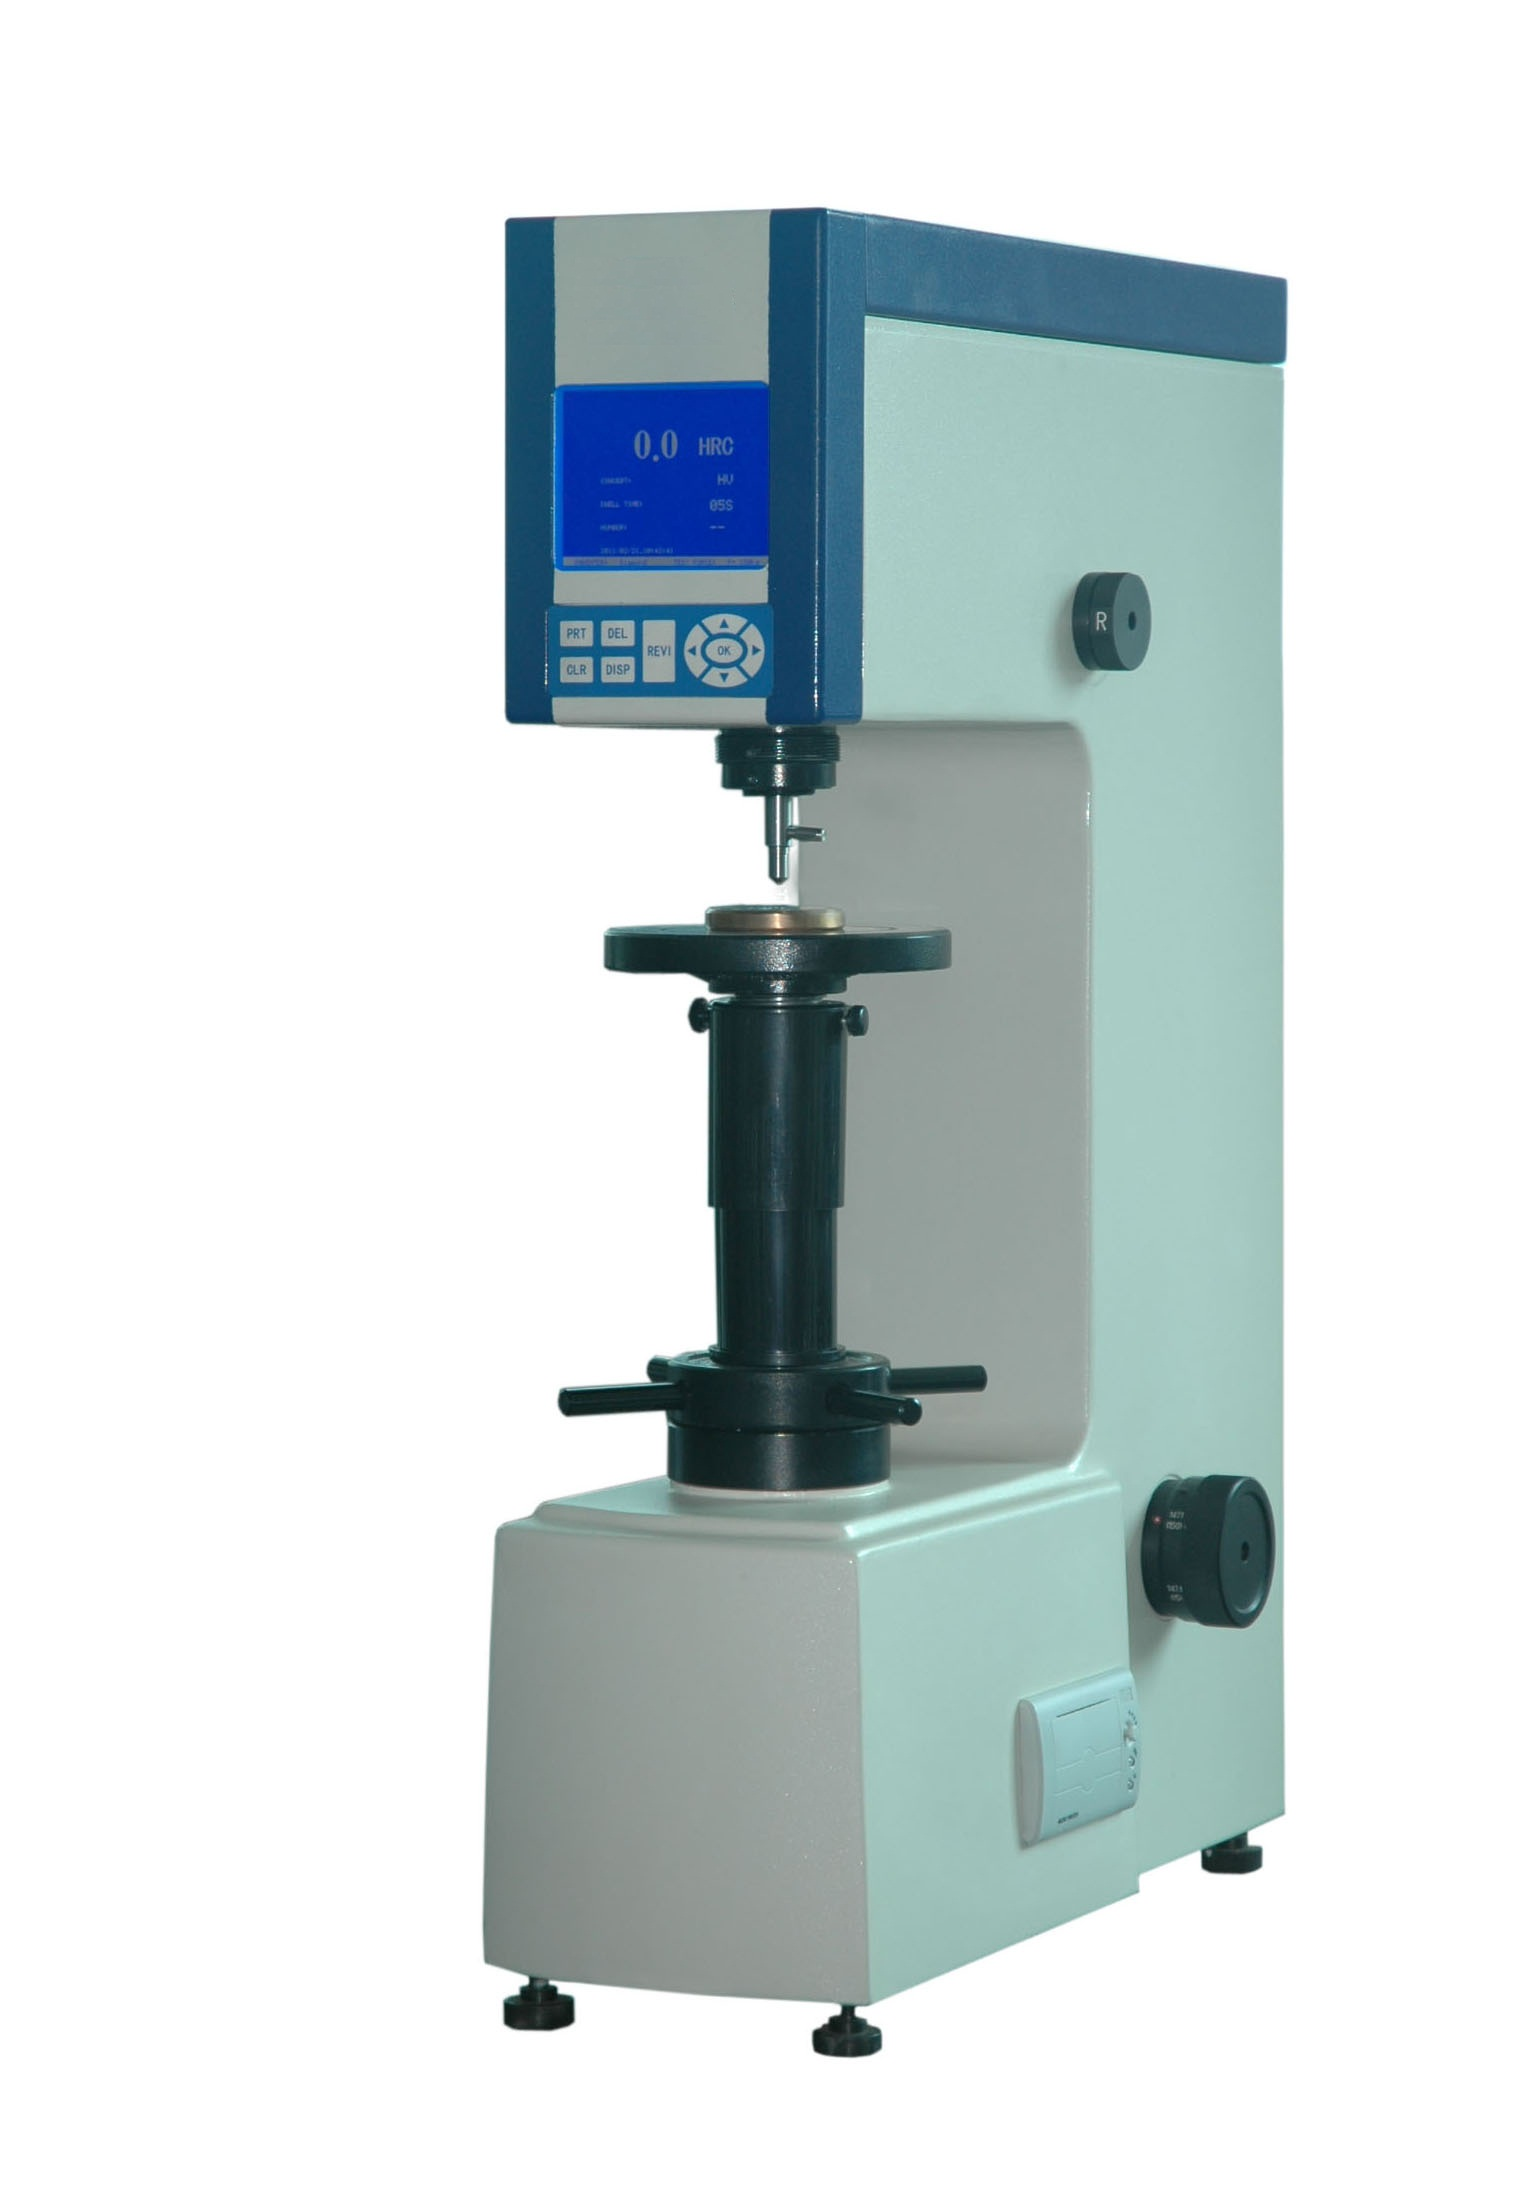 Digital Twin Rockwell Hardness Tester JHR-150DT